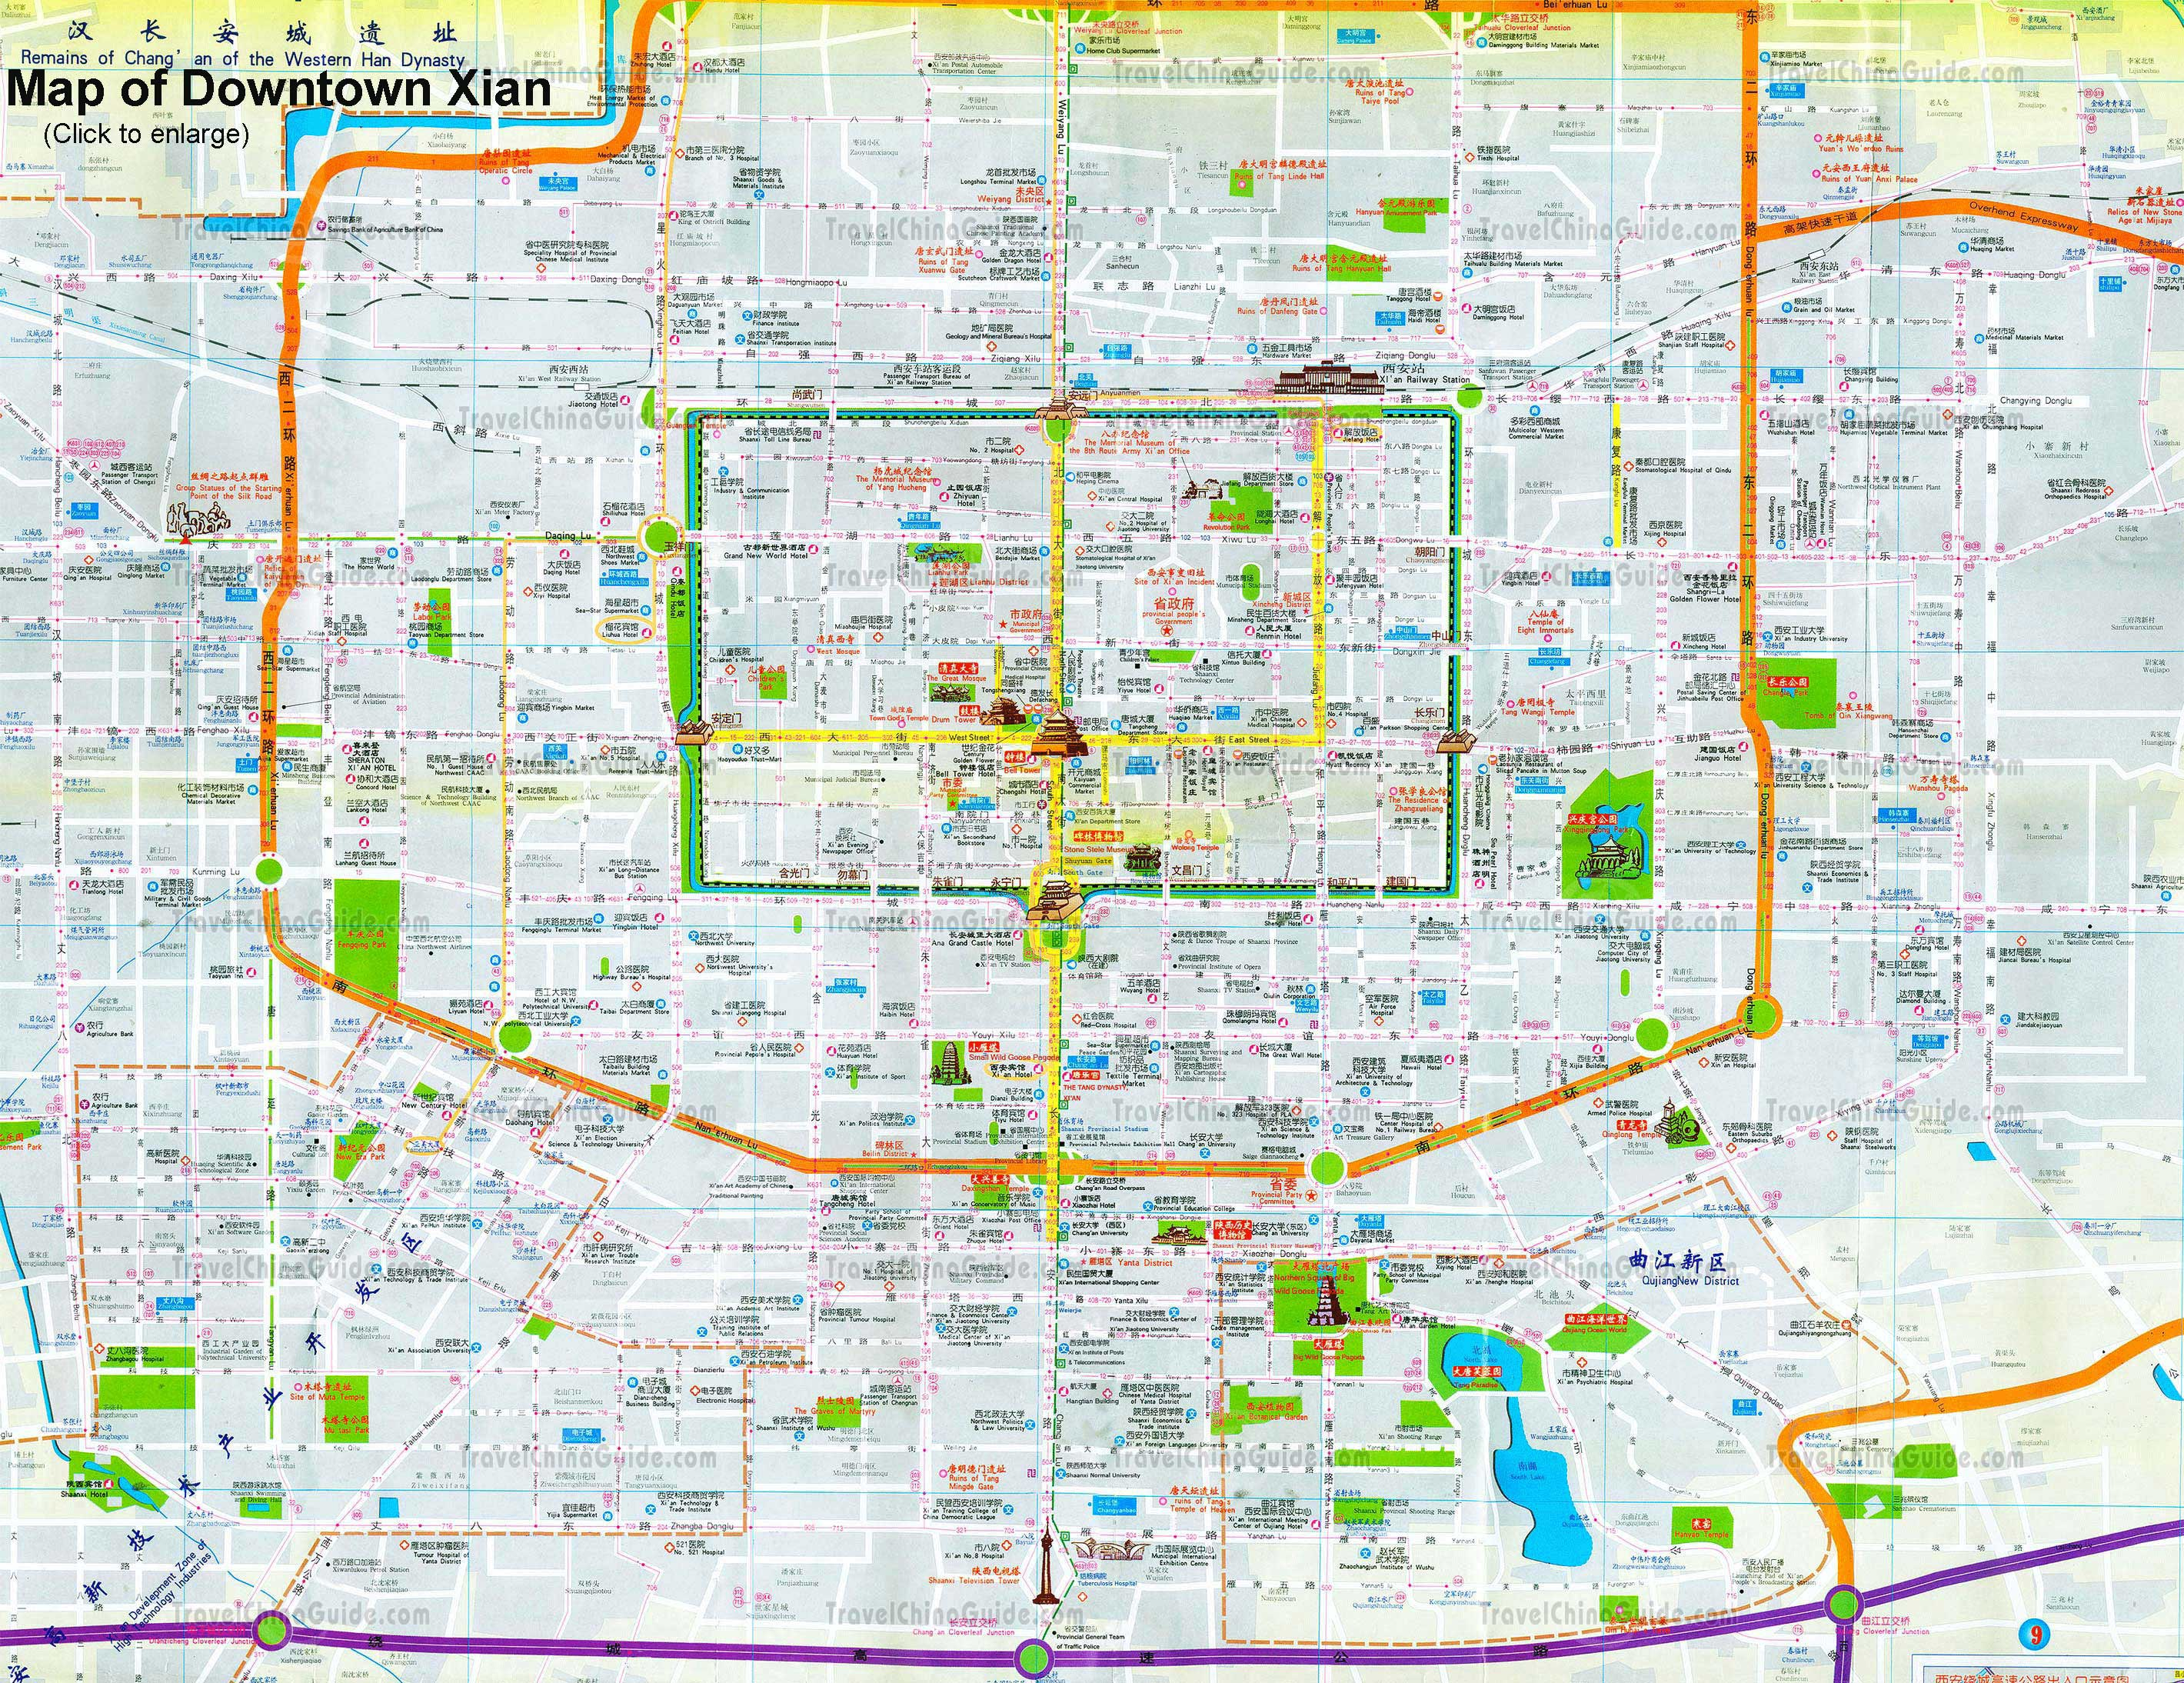 xian map tourist attractions  5 Xian Map Tourist Attractions